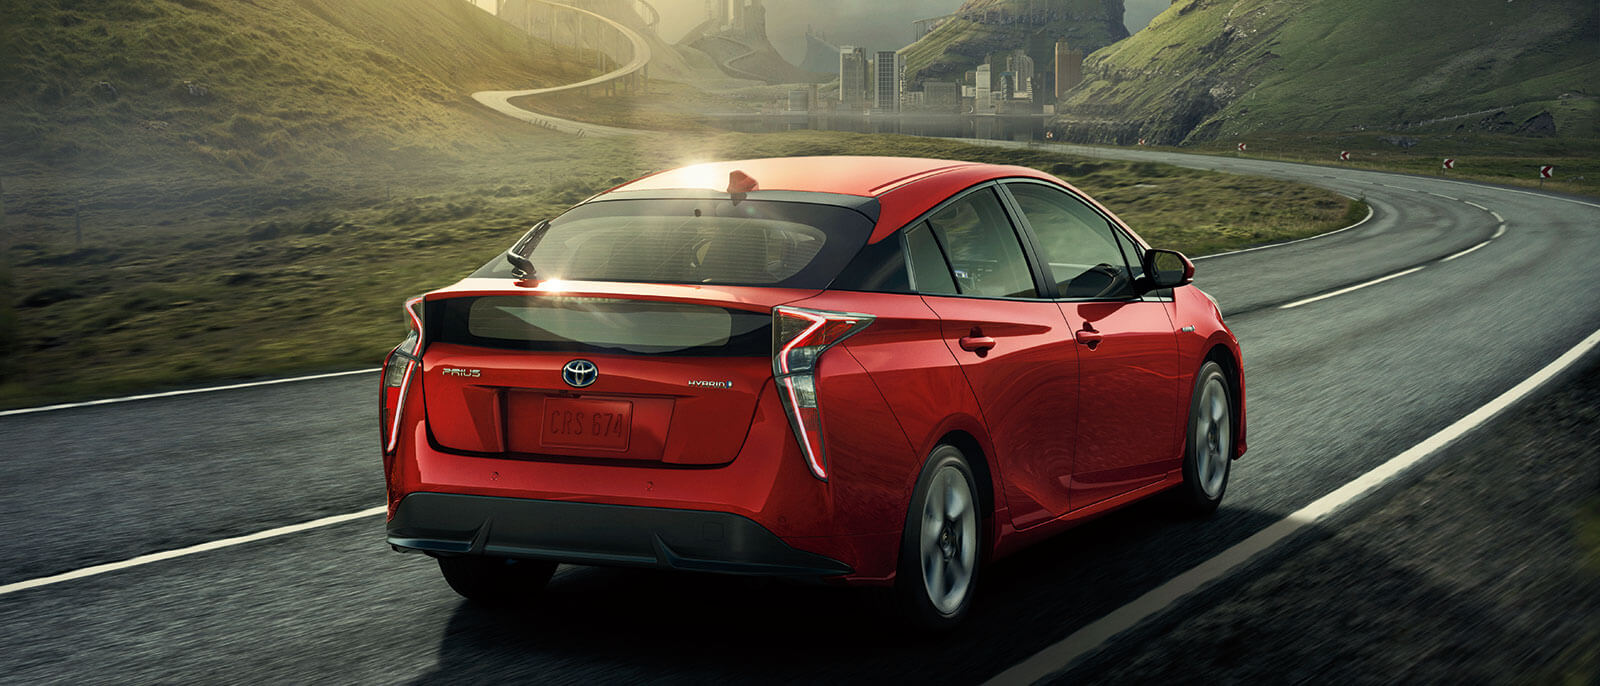 2016 Toyota Prius rear view in red